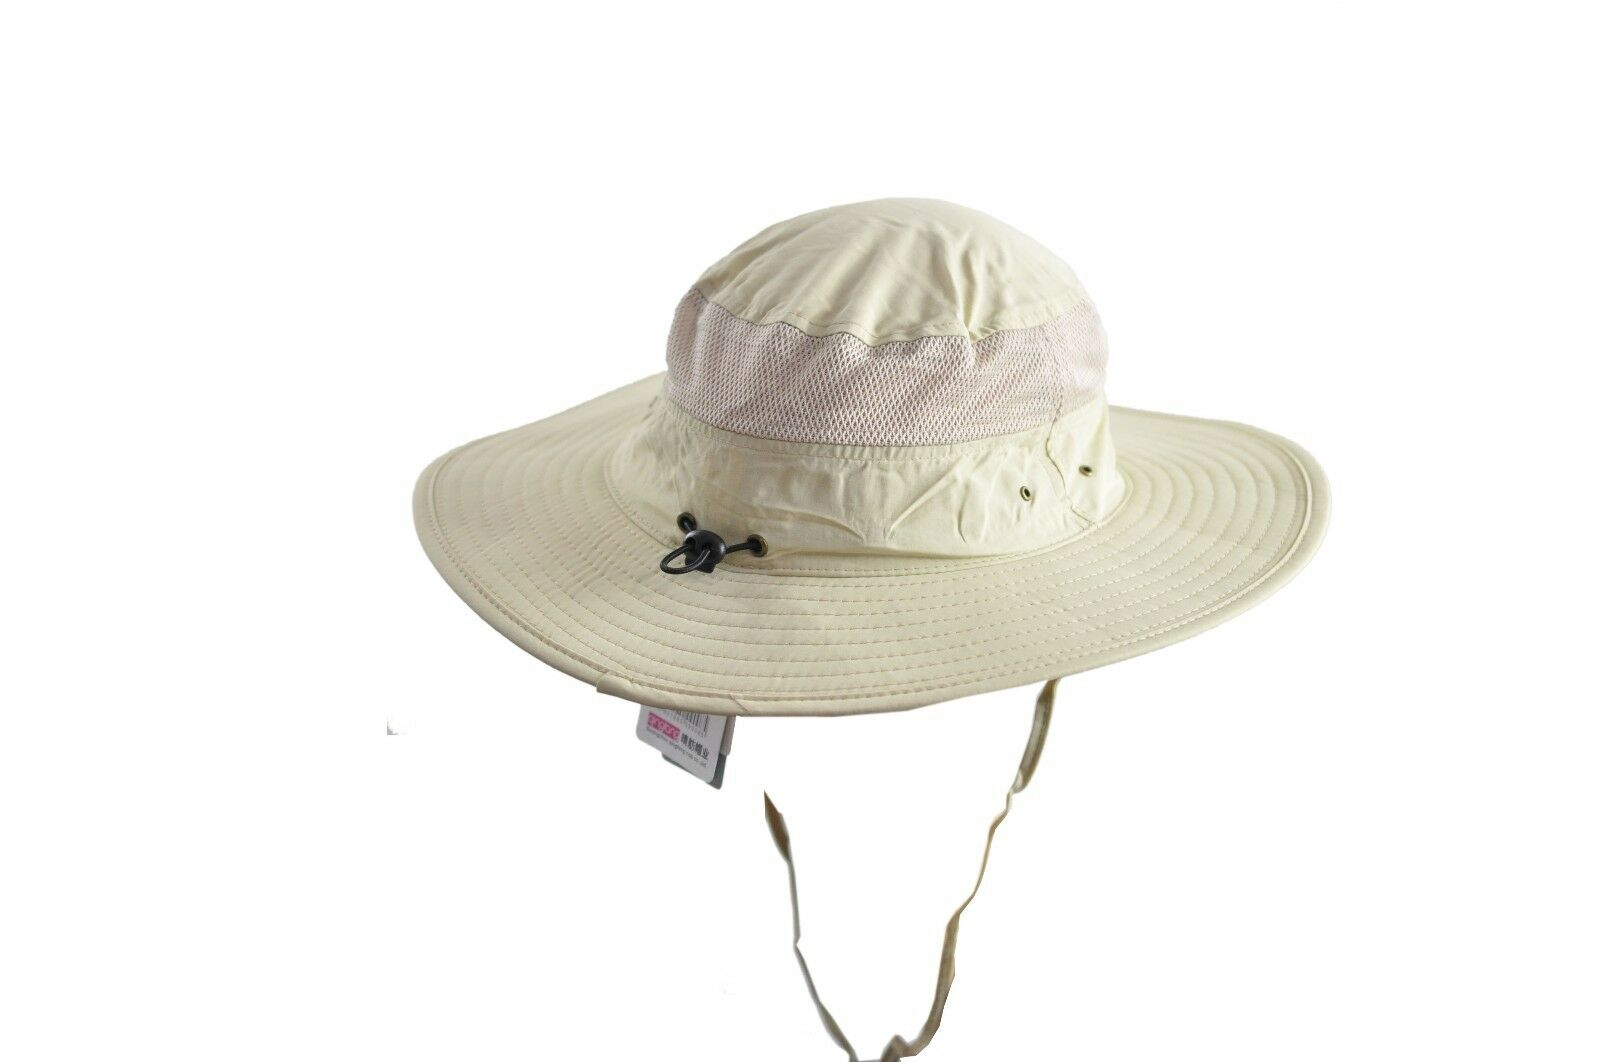 New 100 polyester nylon topi sun protection camping cap for Fishing hats sun protection